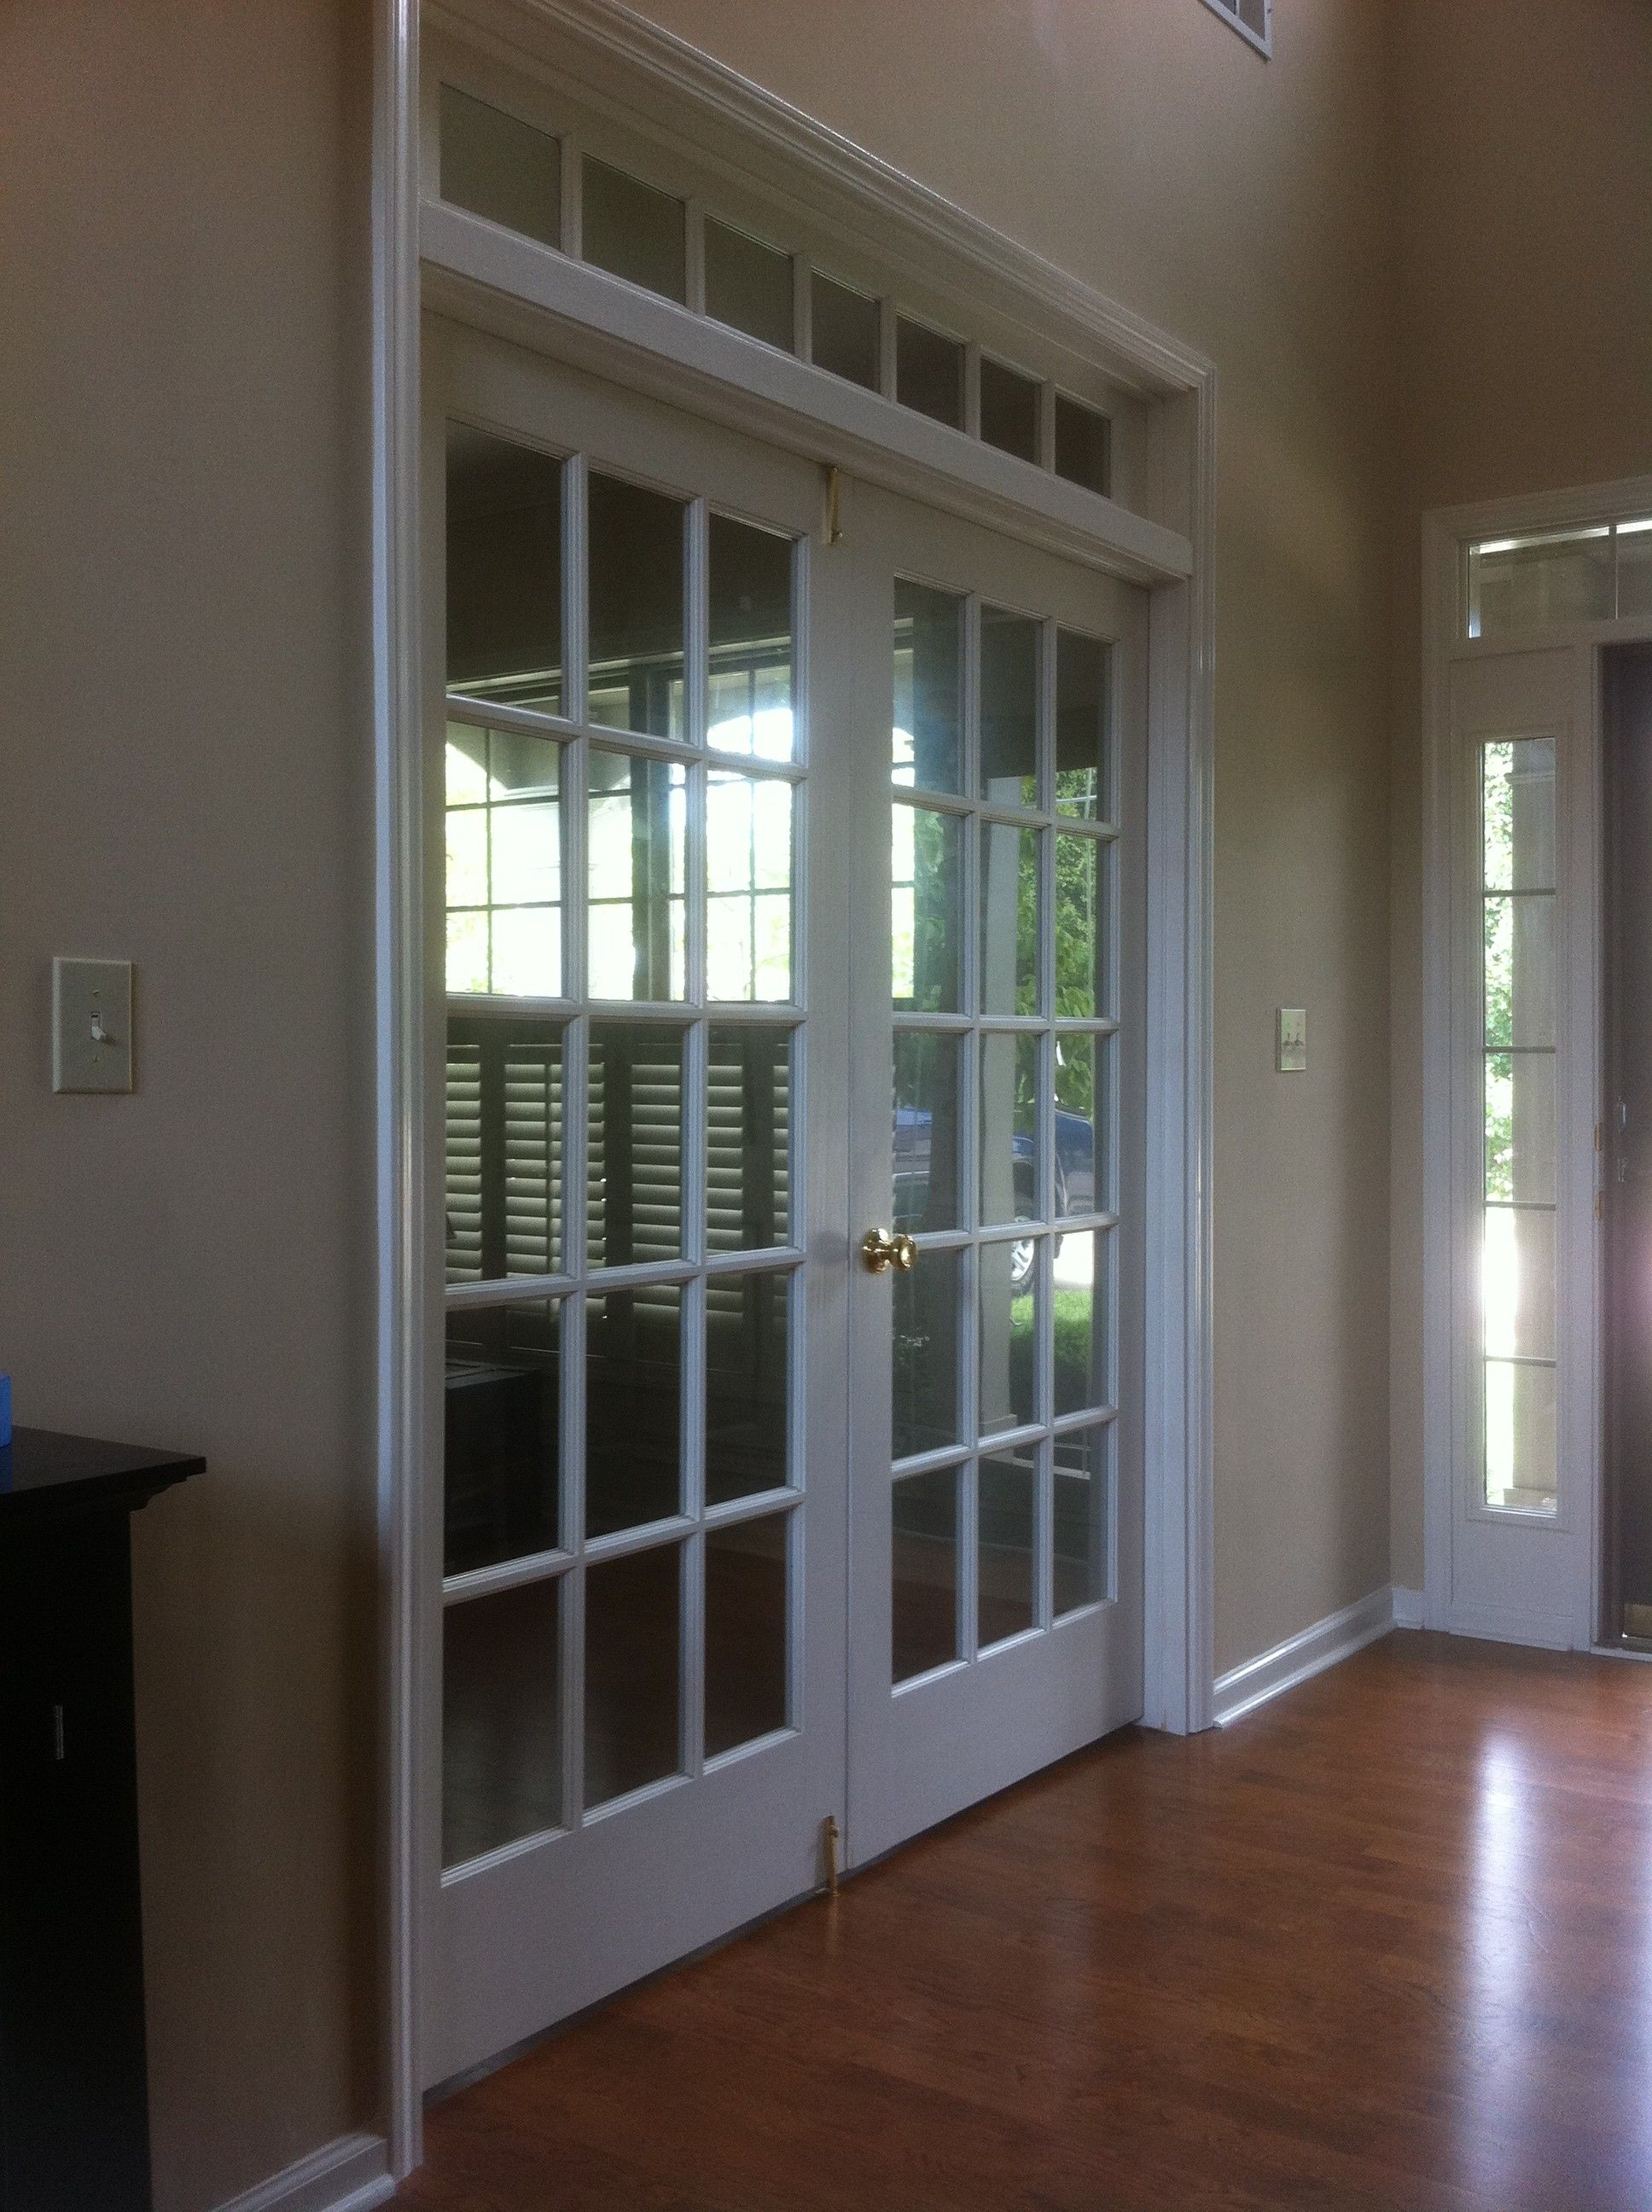 glass what french door lowes interior blinds size with full that is sliding double look like exterior patio a of doors